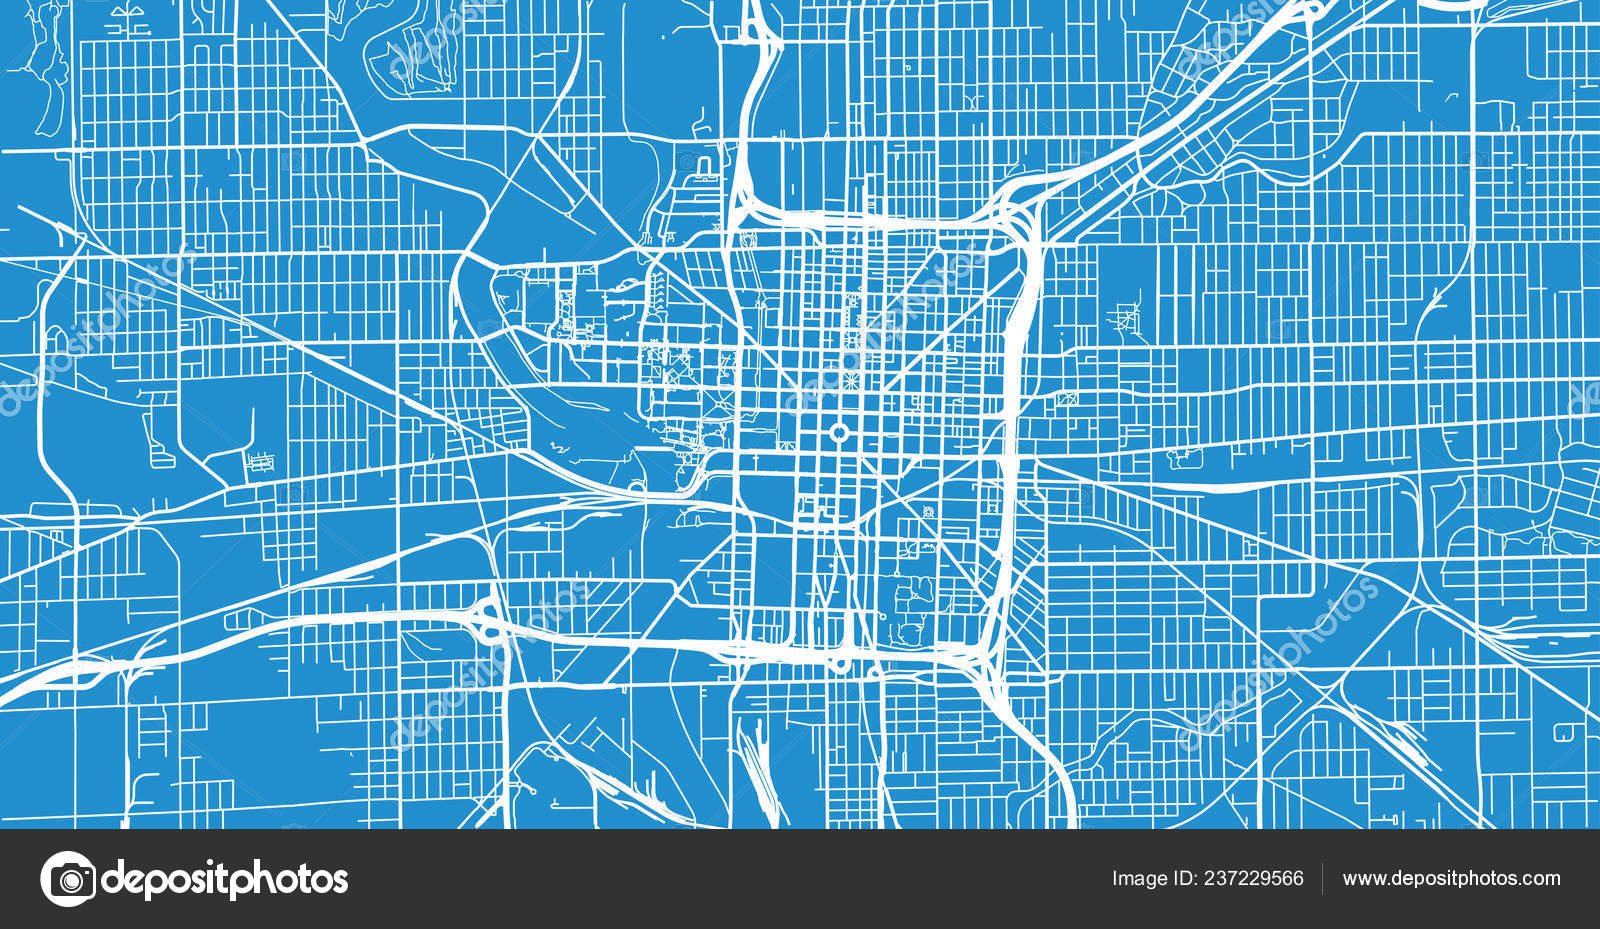 Urban Vector City Map Indianapolis Indiana United States ... on map of northern indianapolis, show on us map indianapolis, satelite map indianapolis, world map indianapolis, map of north indianapolis, county map indianapolis, usa map indianapolis, street map indianapolis, state map location in indianapolis, weather map indianapolis, things to do in indianapolis, indiana map indianapolis, judgemental map indianapolis, detailed map of downtown indianapolis, map with landmarks of indianapolis, printable map of indianapolis, united states atlas with capitals, large map of indianapolis,